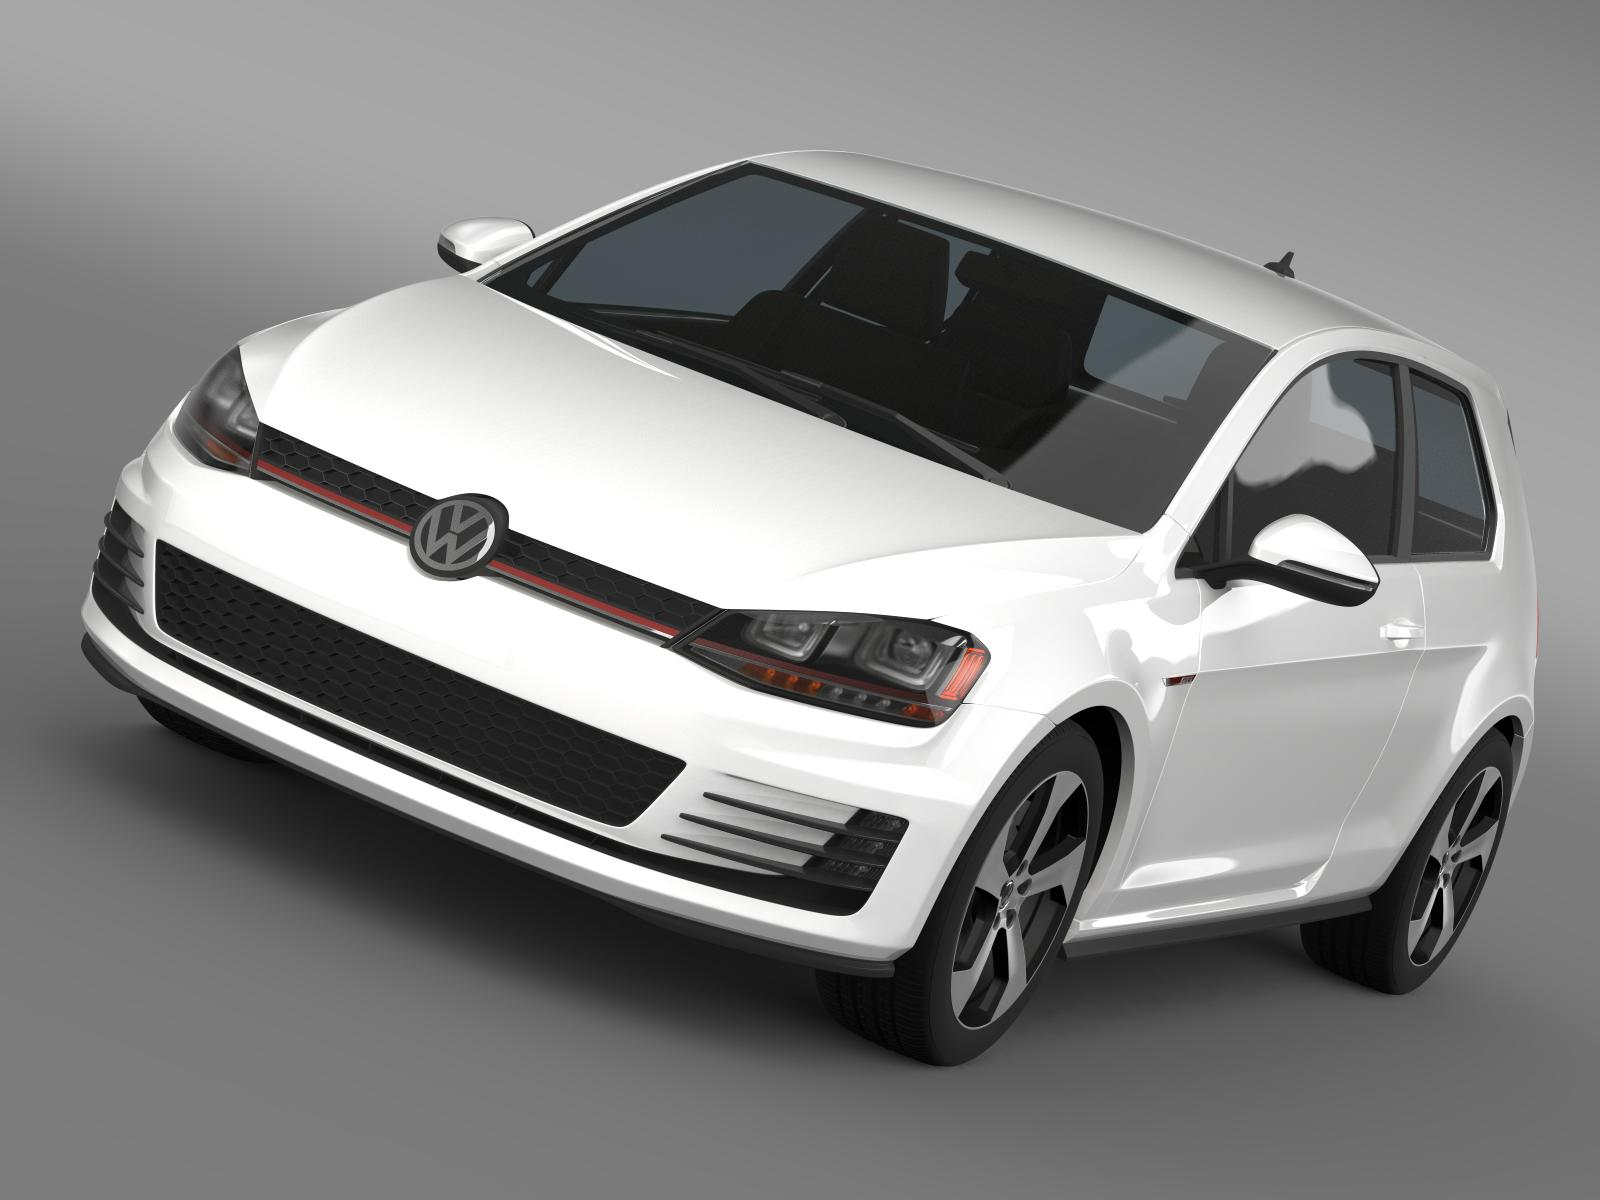 vw golf gti 3door 2015 3d model 3ds max fbx c4d lwo ma mb hrc xsi obj 207685